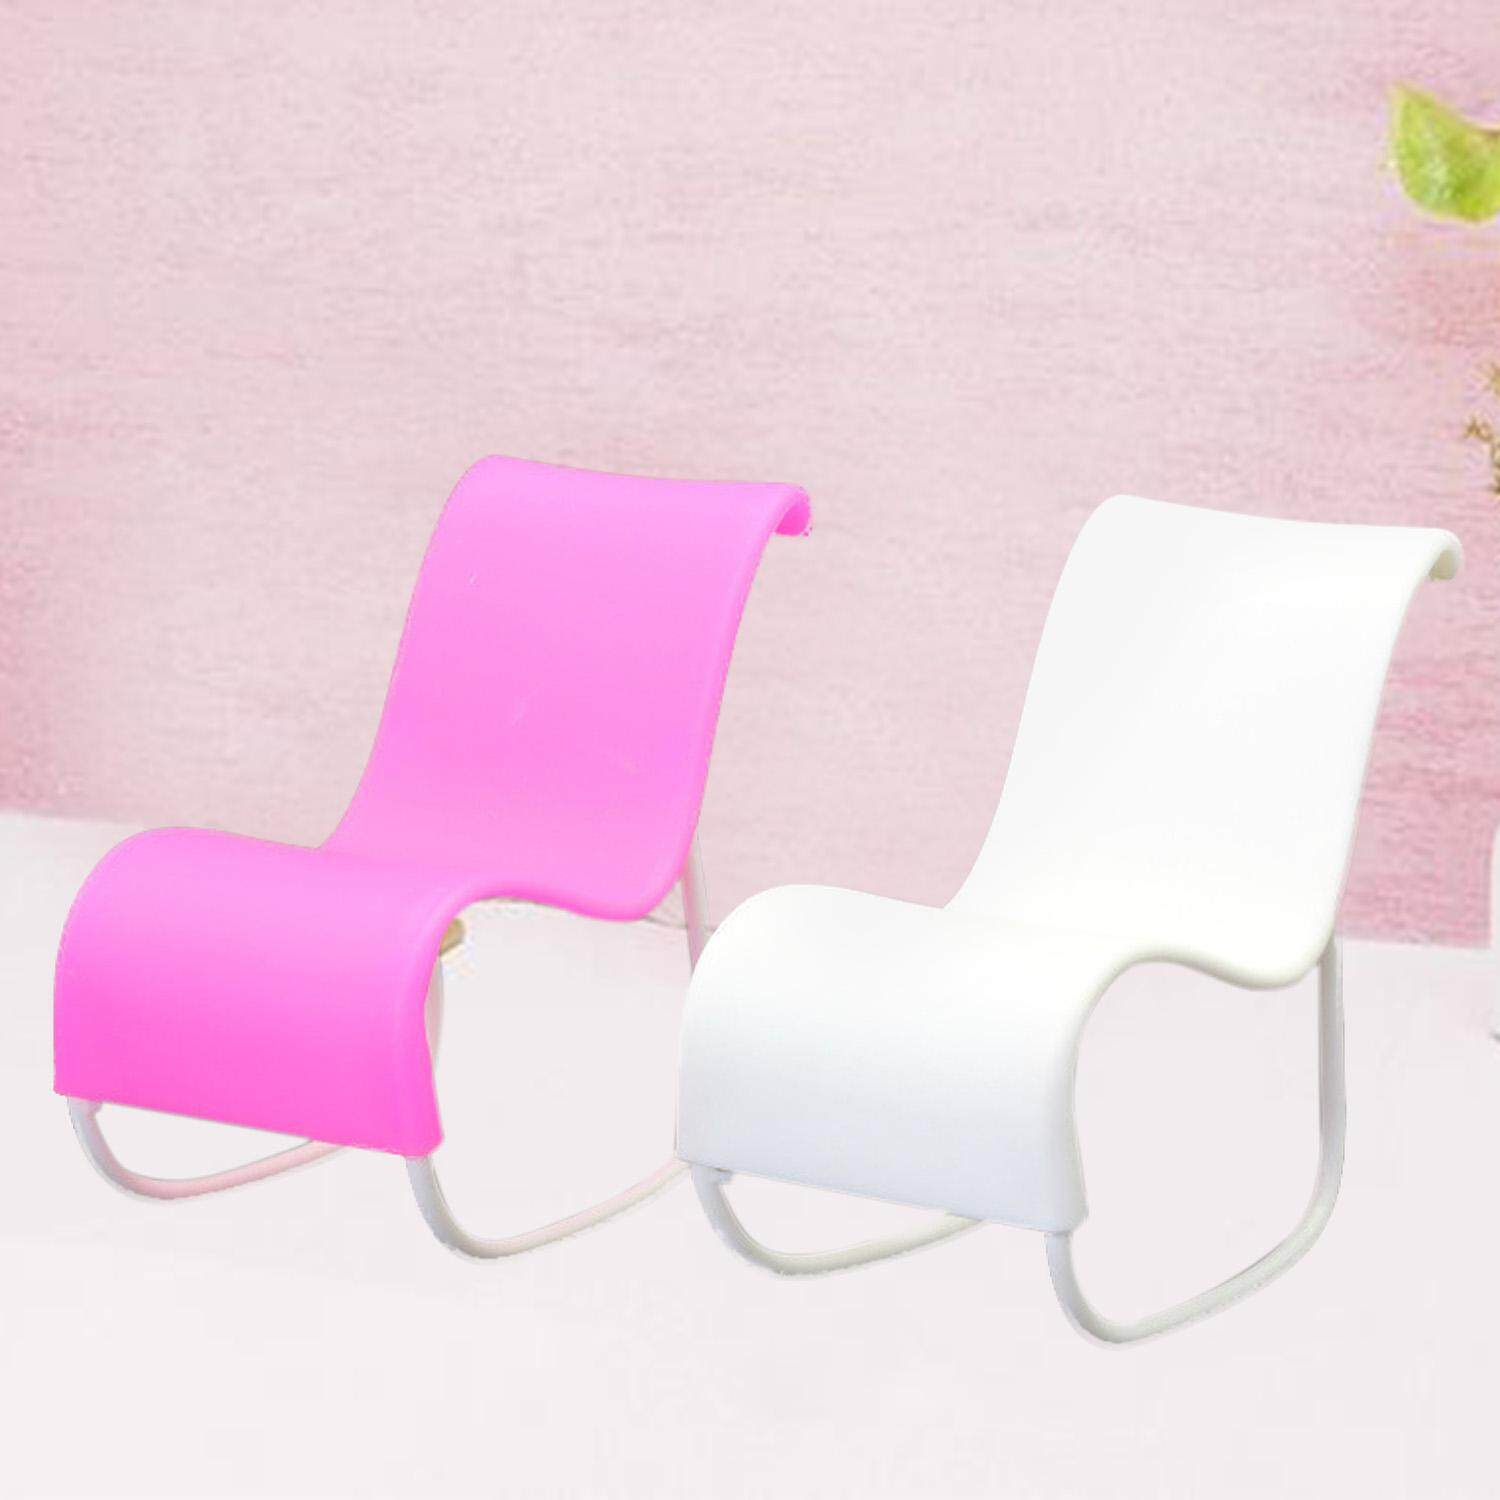 2 PCS Doll Beach Lounge Rocking Chair Living Room Furniture Accessories for Barbie Toys Princess Dreamhouse Garden - intl